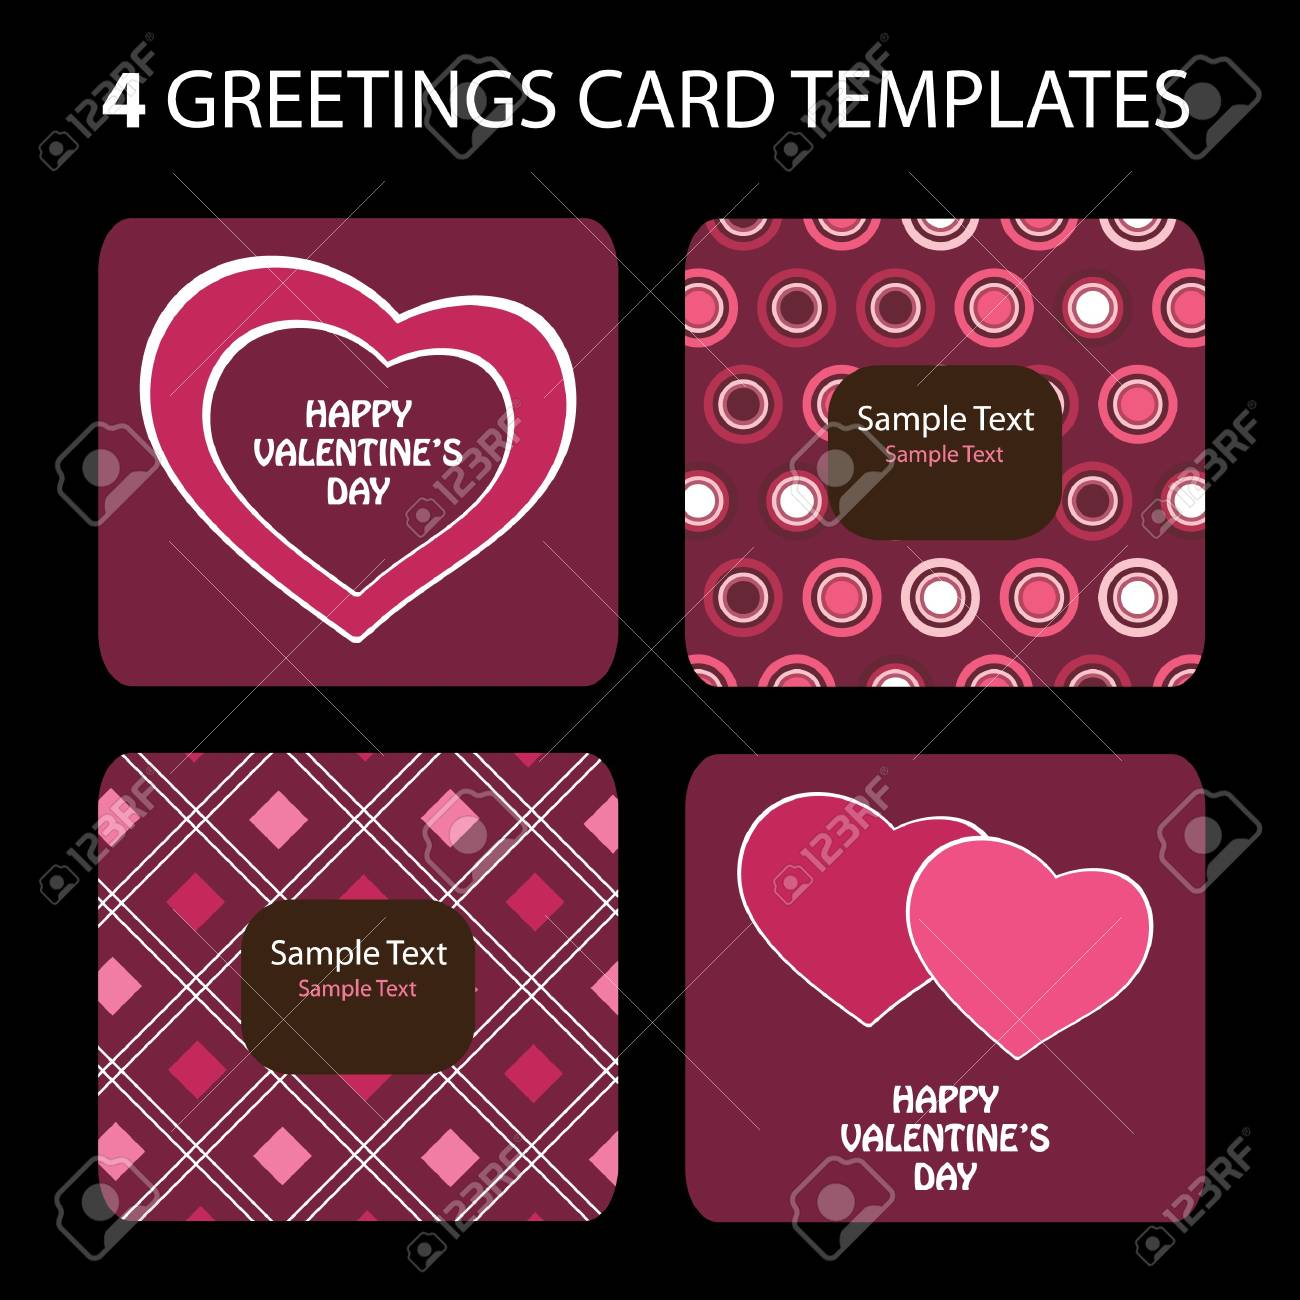 4 Greeting Cards Valentines Day Royalty Free Cliparts Vectors And